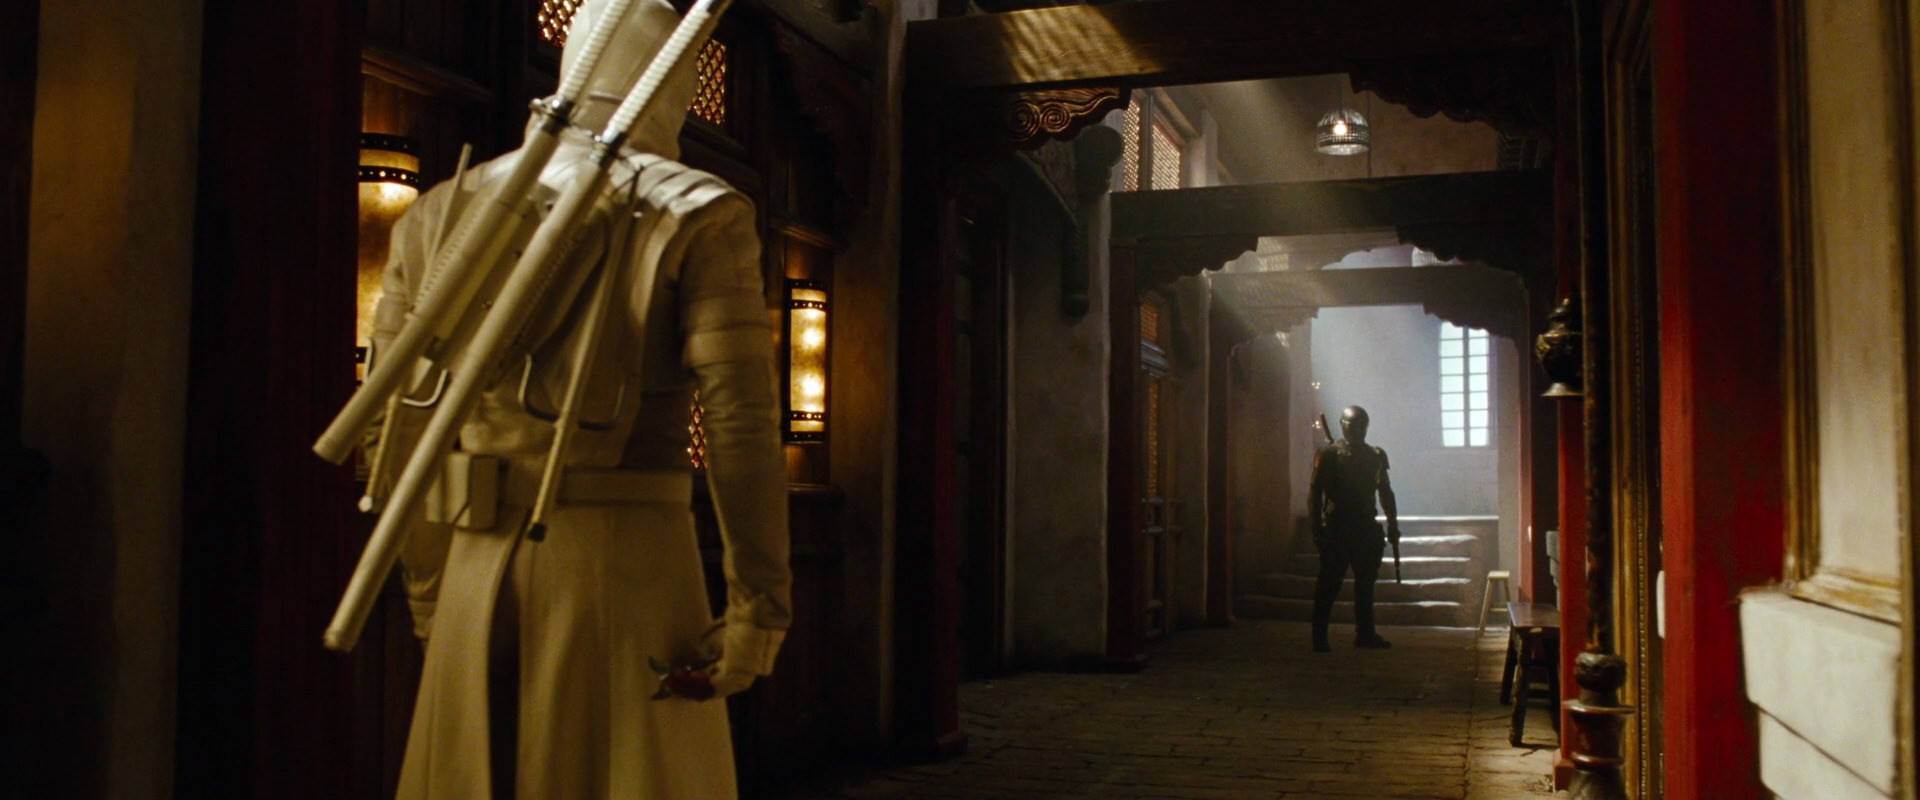 gi-joe2-movie-screencaps.com-7228.JPG